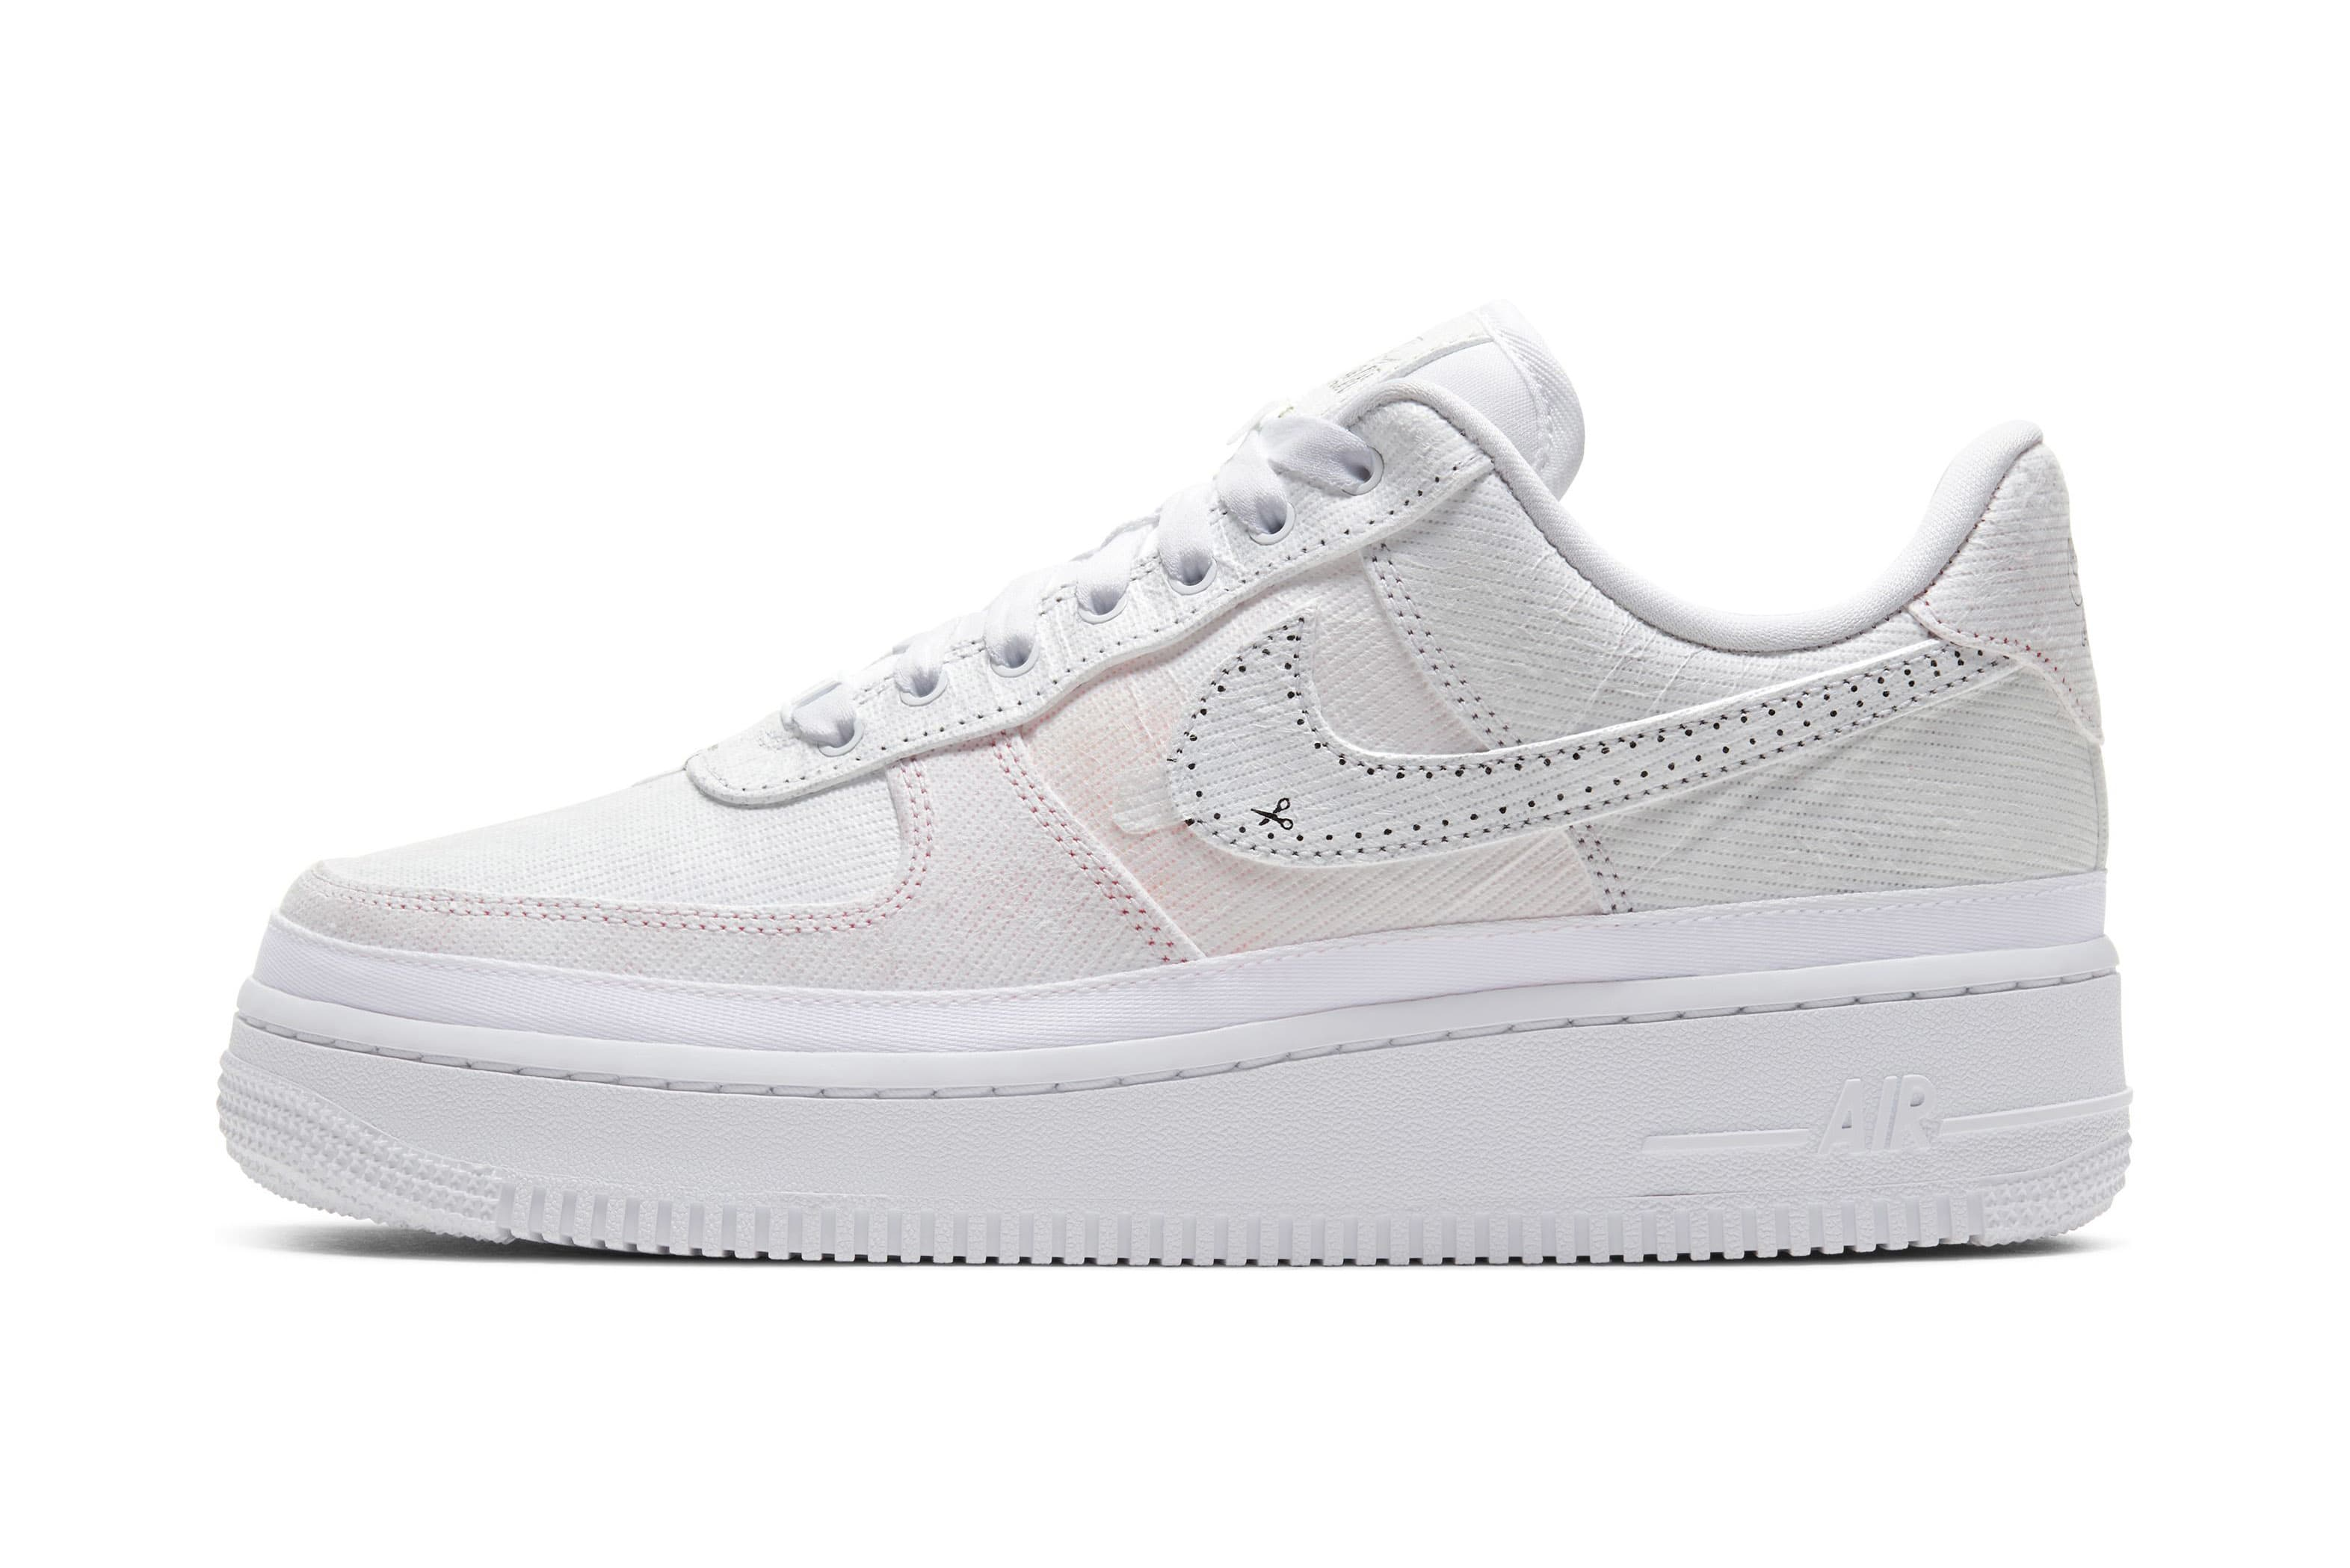 Nike Air Force 1 '07 LX W - CJ1650-100